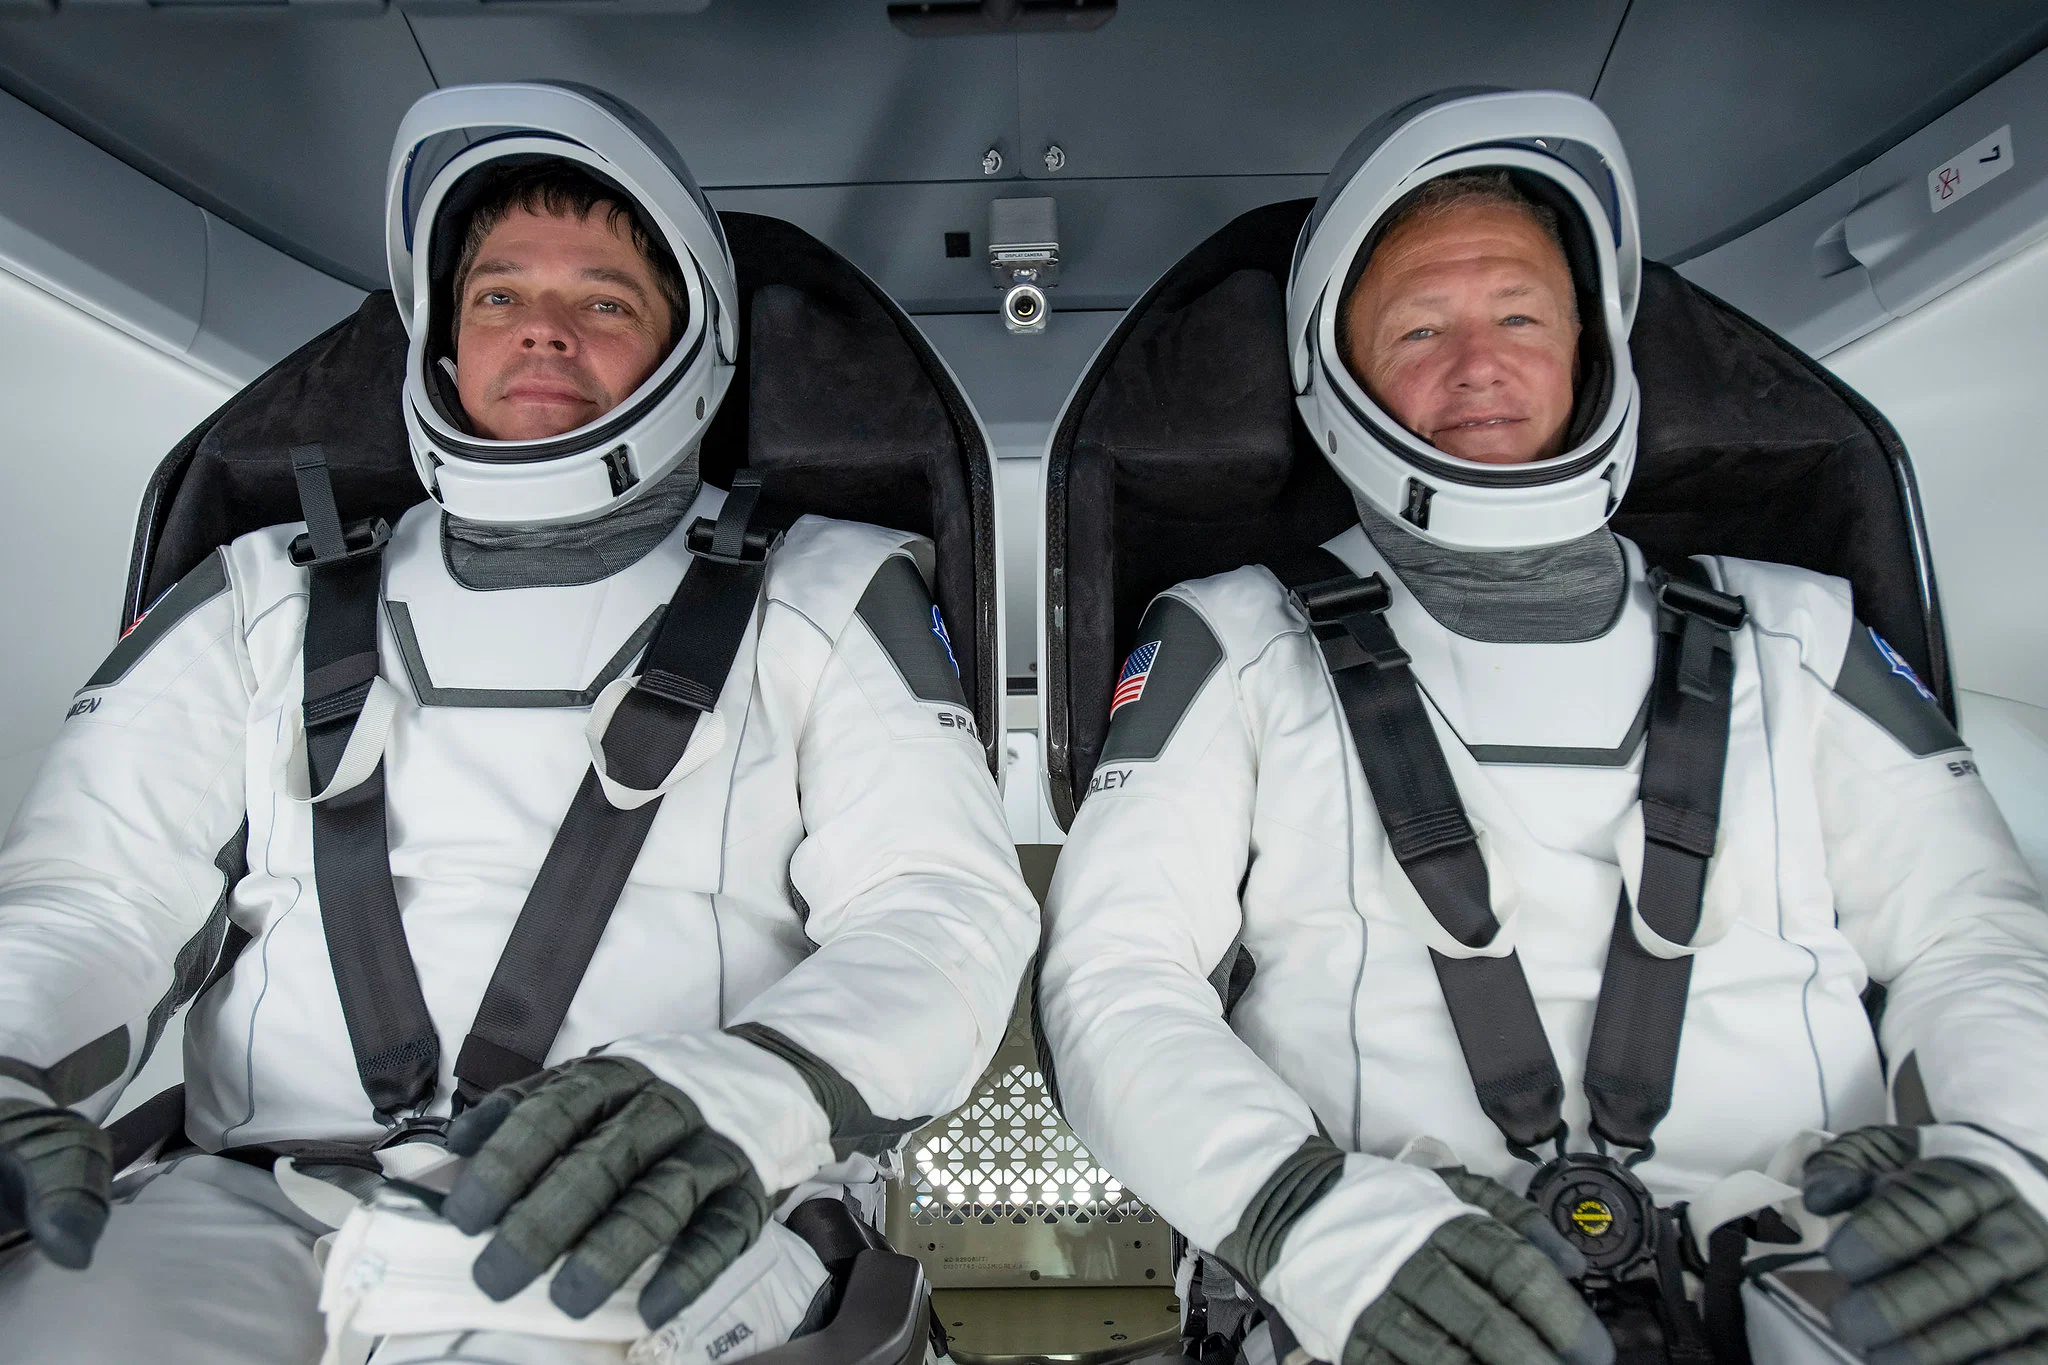 NASA astronauts Robert Behnken and Douglas Hurley, the astronauts selected to fly to the ISS for the worl's first private space humanflight mission. Courtesy:SpaceX